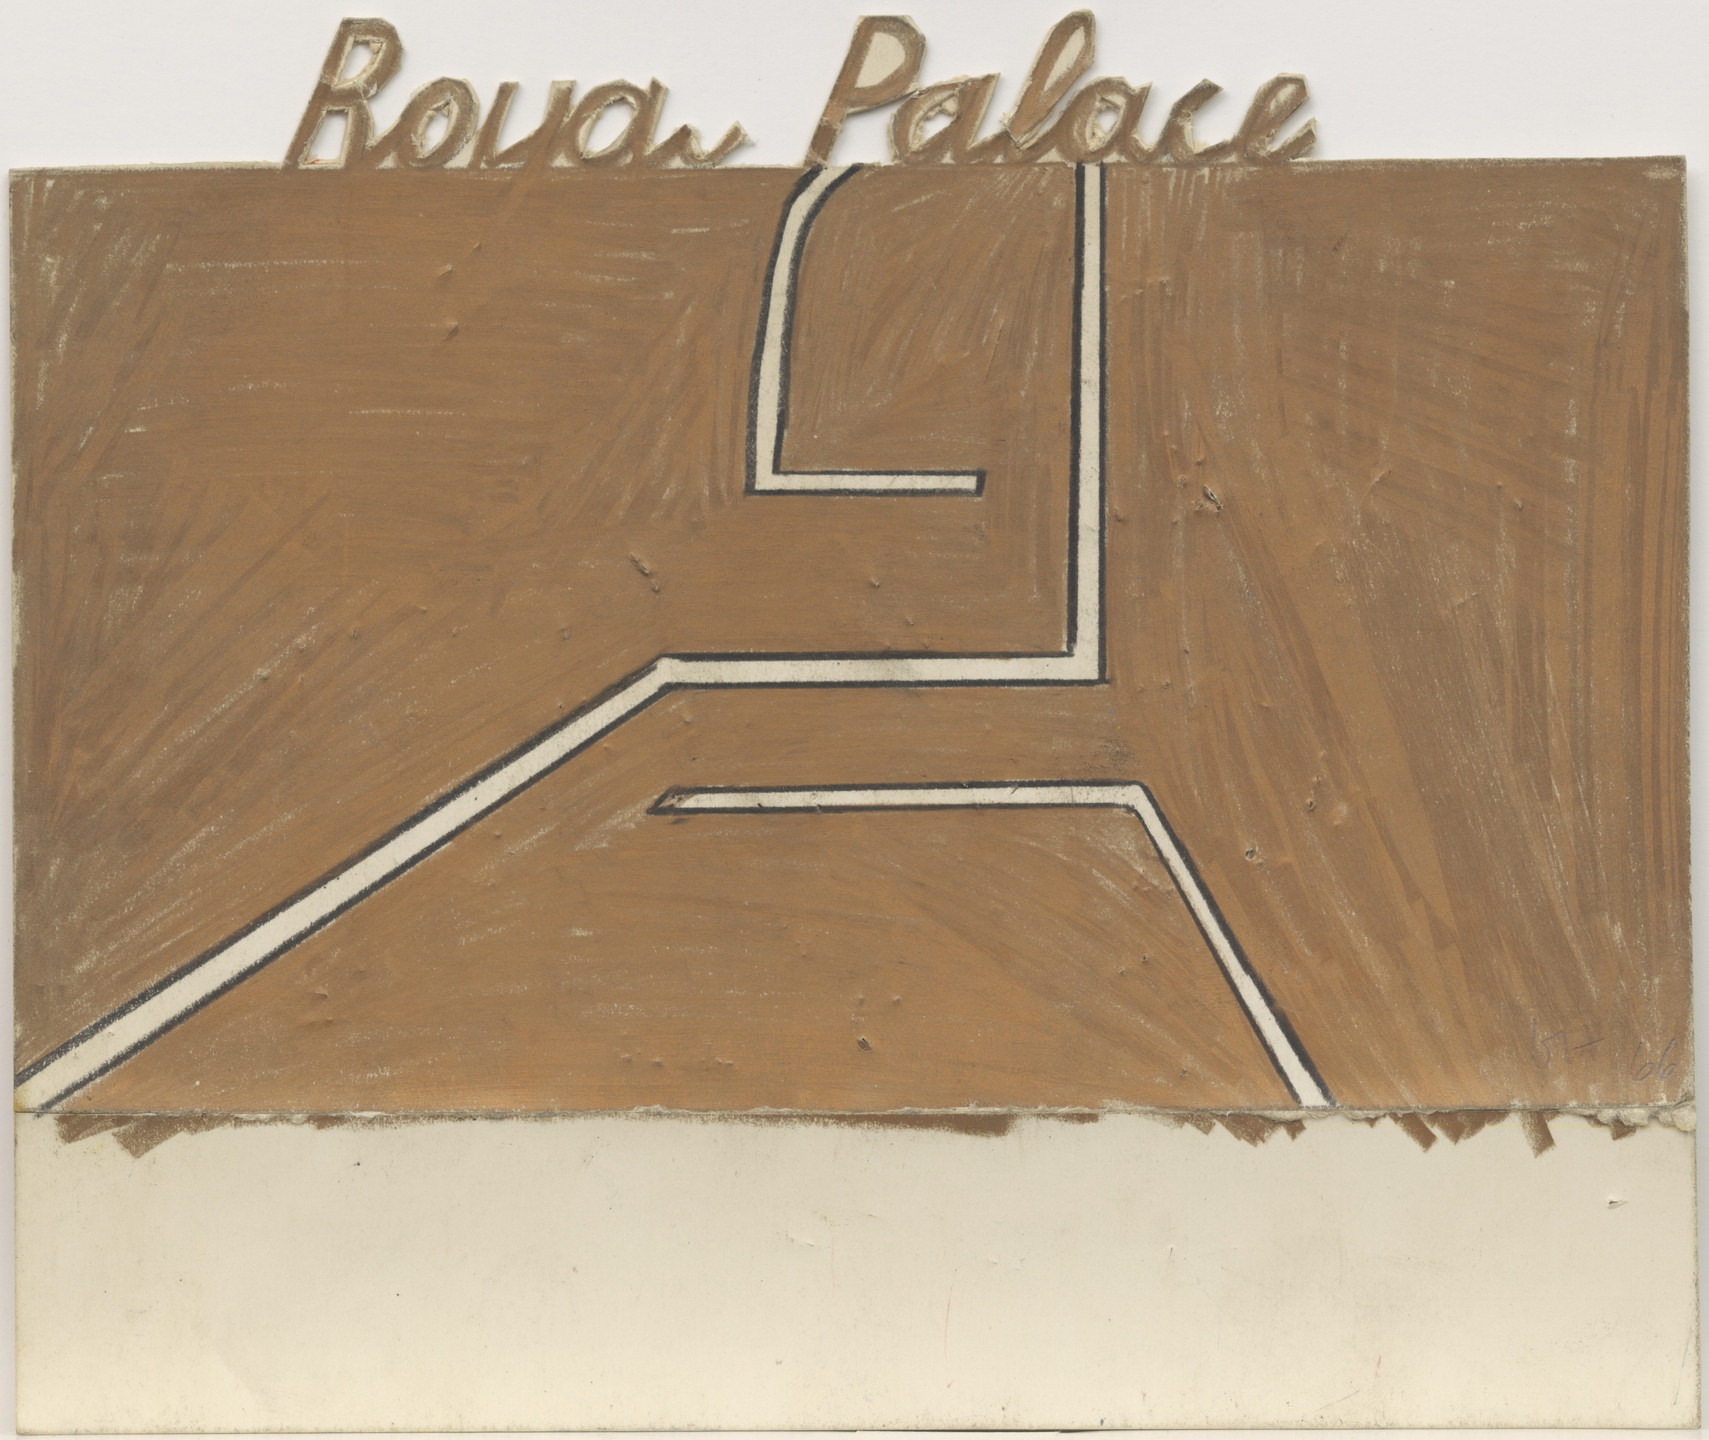 David Hockney. Royal Palace (b), design for Ubu Roi. (1966)